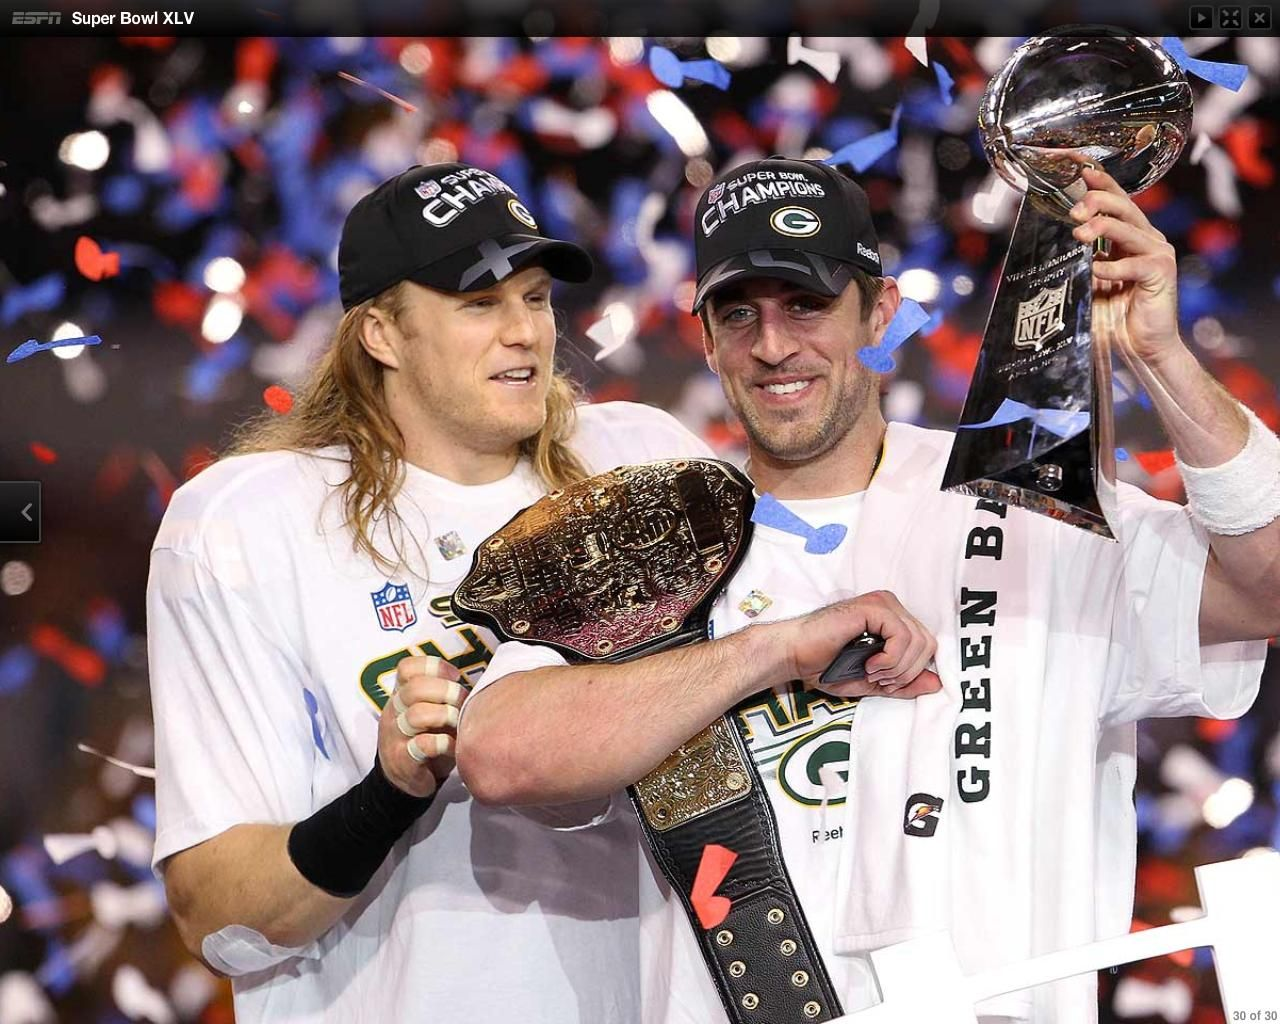 Aaron Rodgers With Championship Belt Superbowl Xlv Green Bay Packers Fans Aaron Rodgers Super Bowl